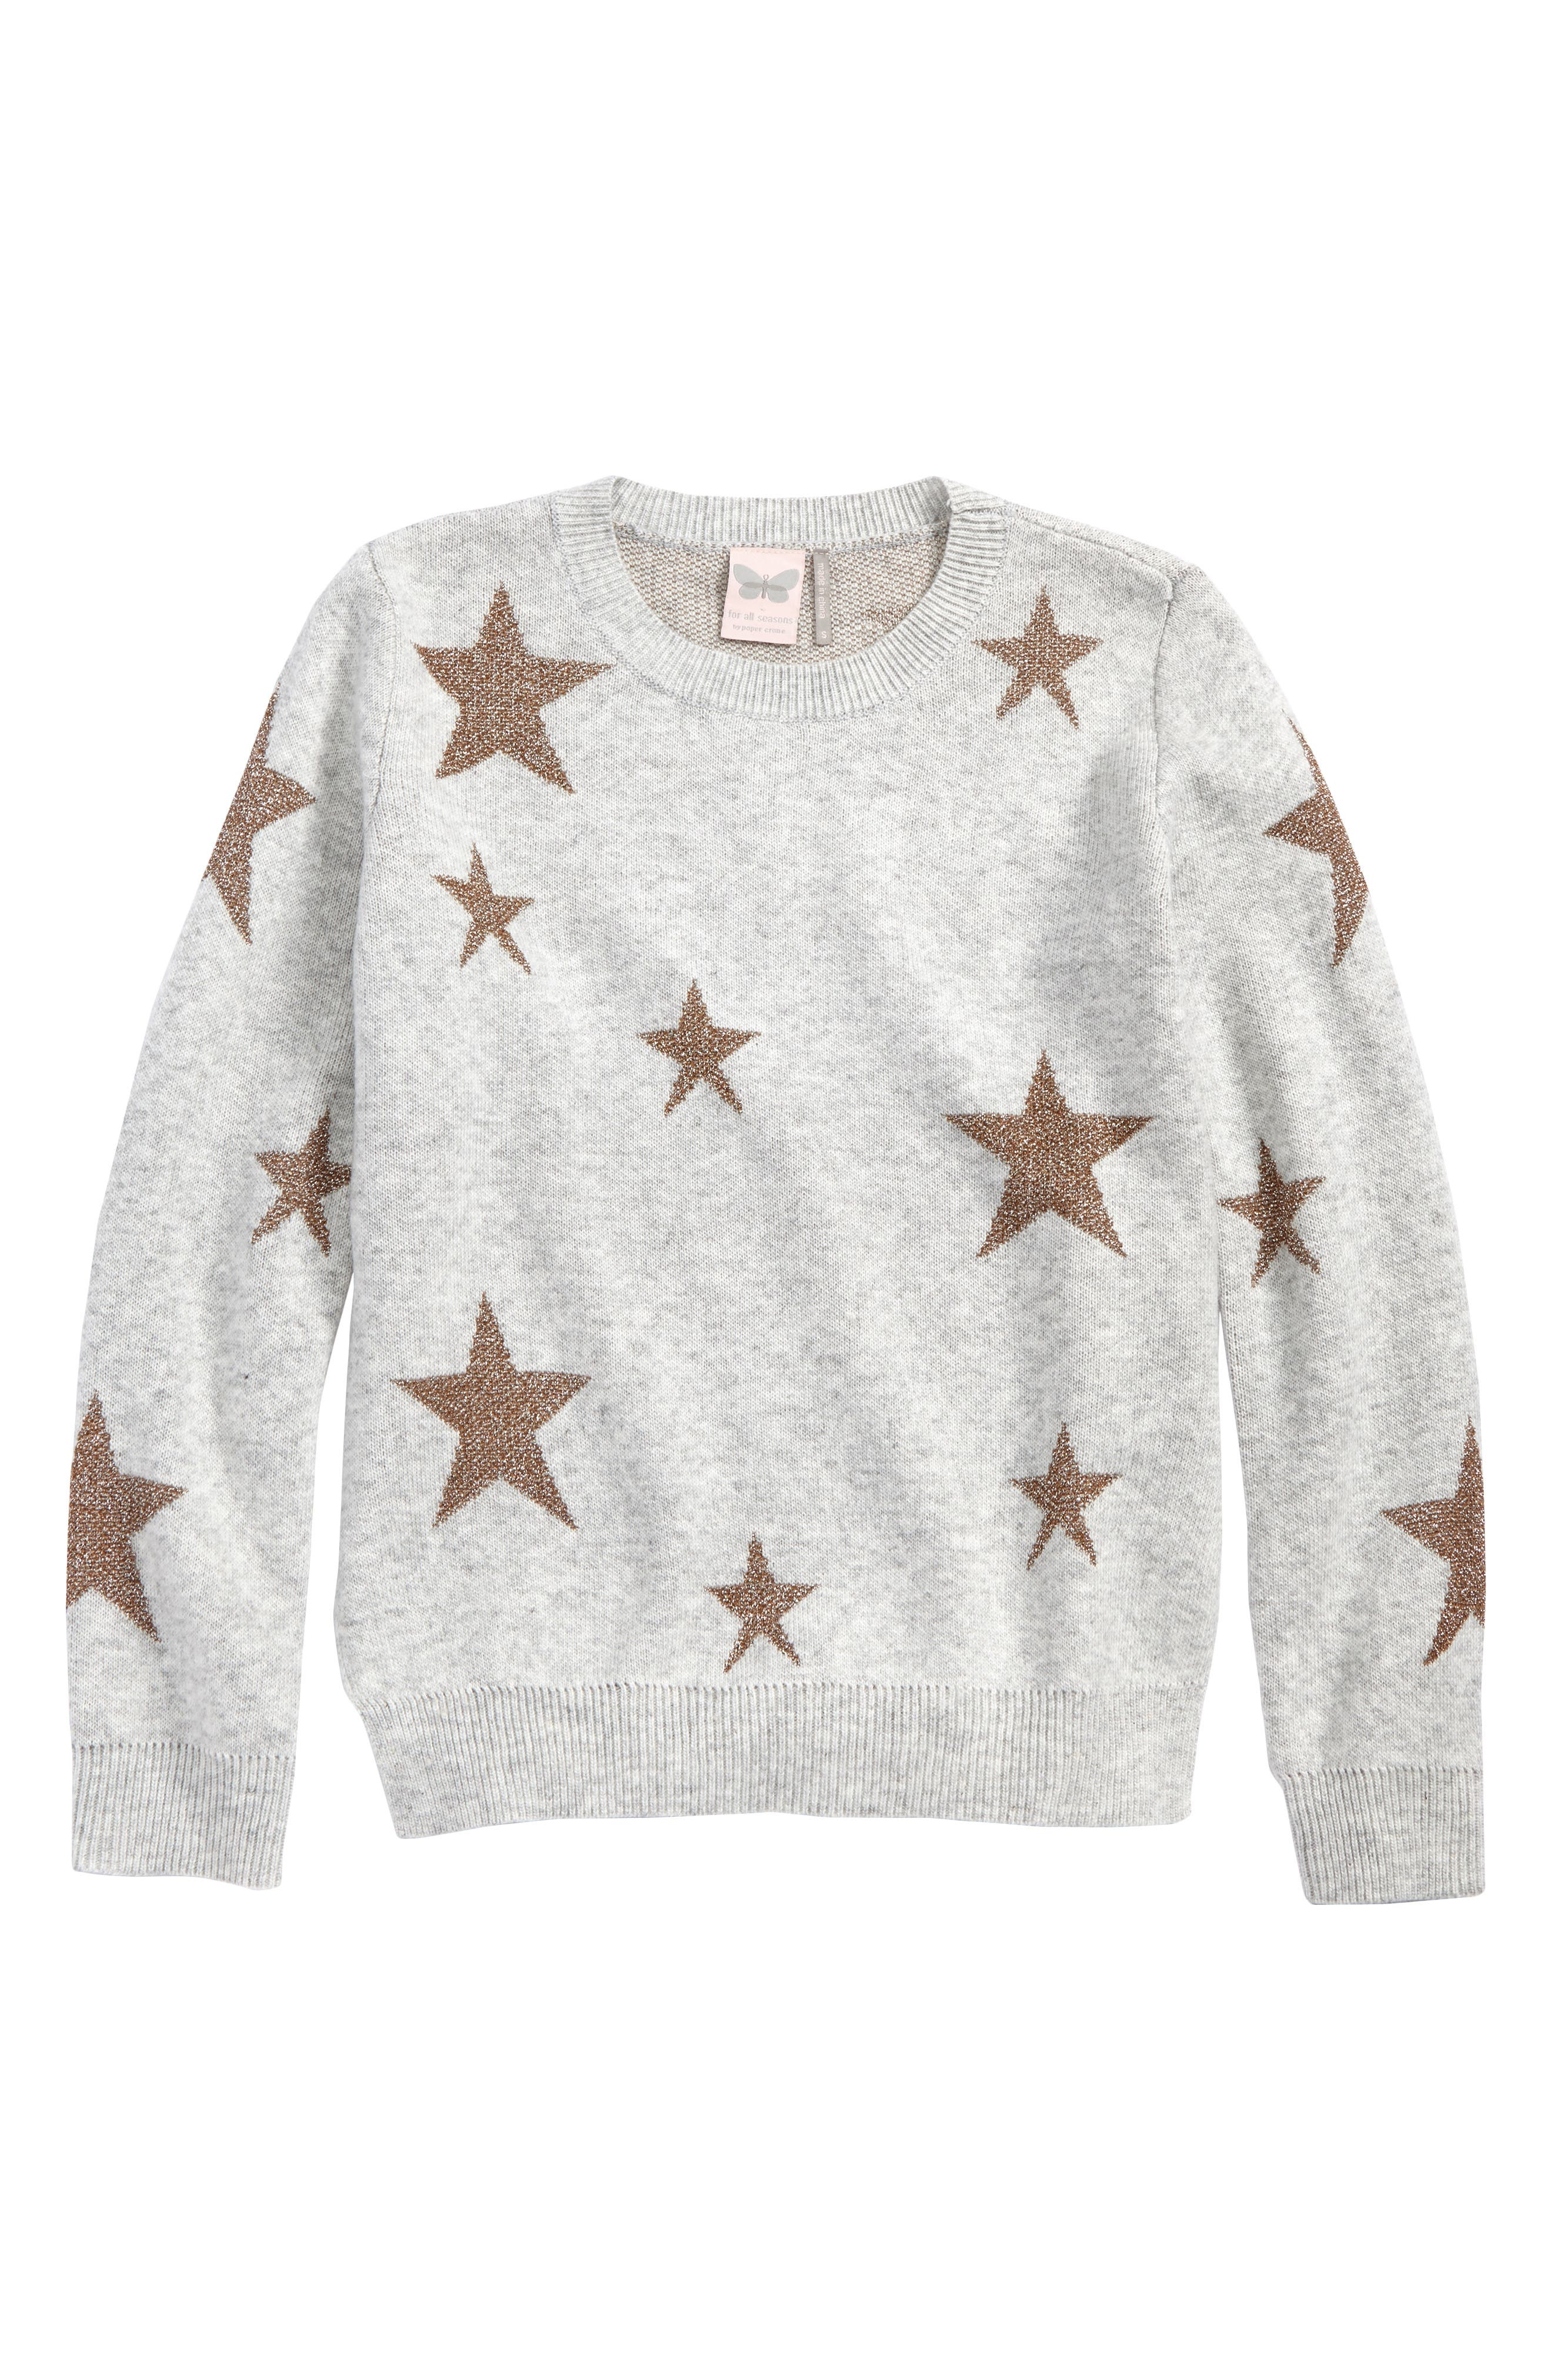 Star Sweater,                             Main thumbnail 1, color,                             Ivory/ Gold Stars